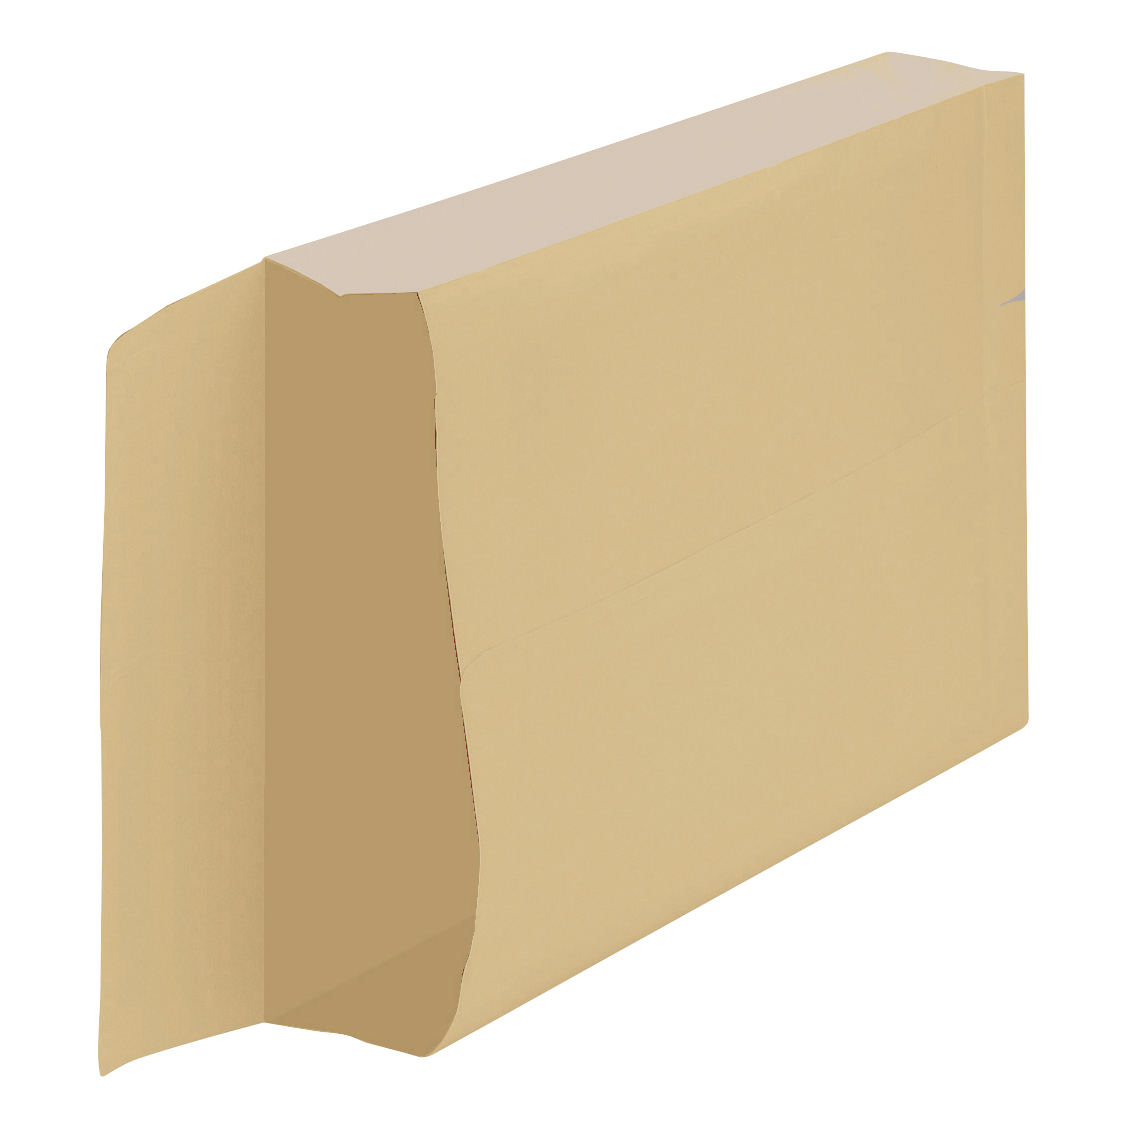 New Guardian Armour Envelopes 465x340mm Gusset 50mm Peel&Seal 130gsm Kraft Manilla Ref L28413 Pack 100